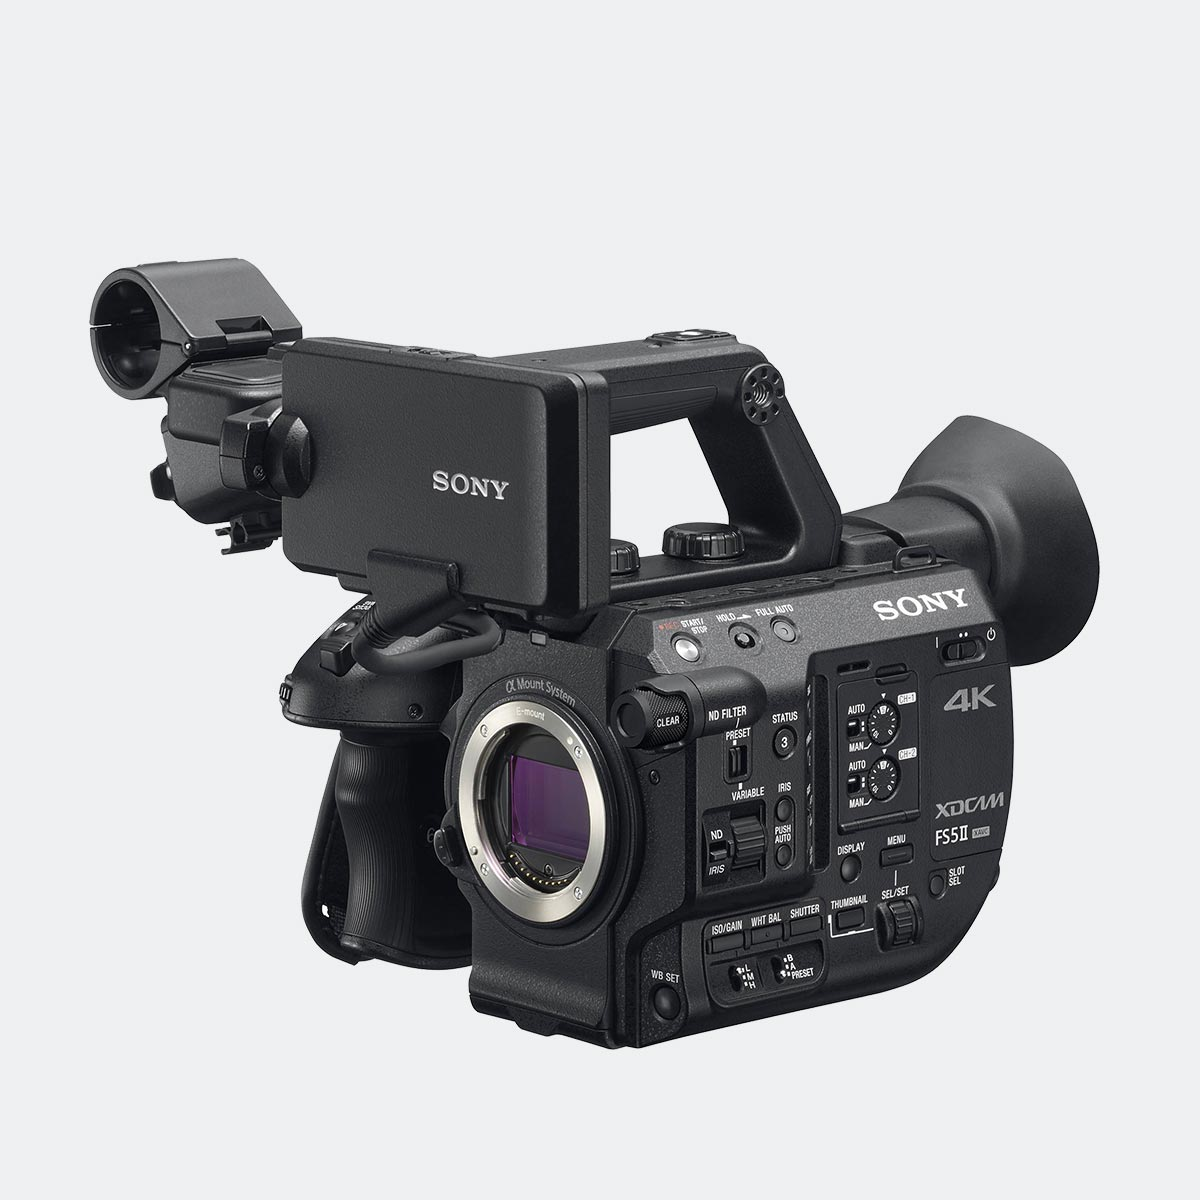 Sony PXW-FS5 II (FS5M2) Handheld Super 35 Camcorder